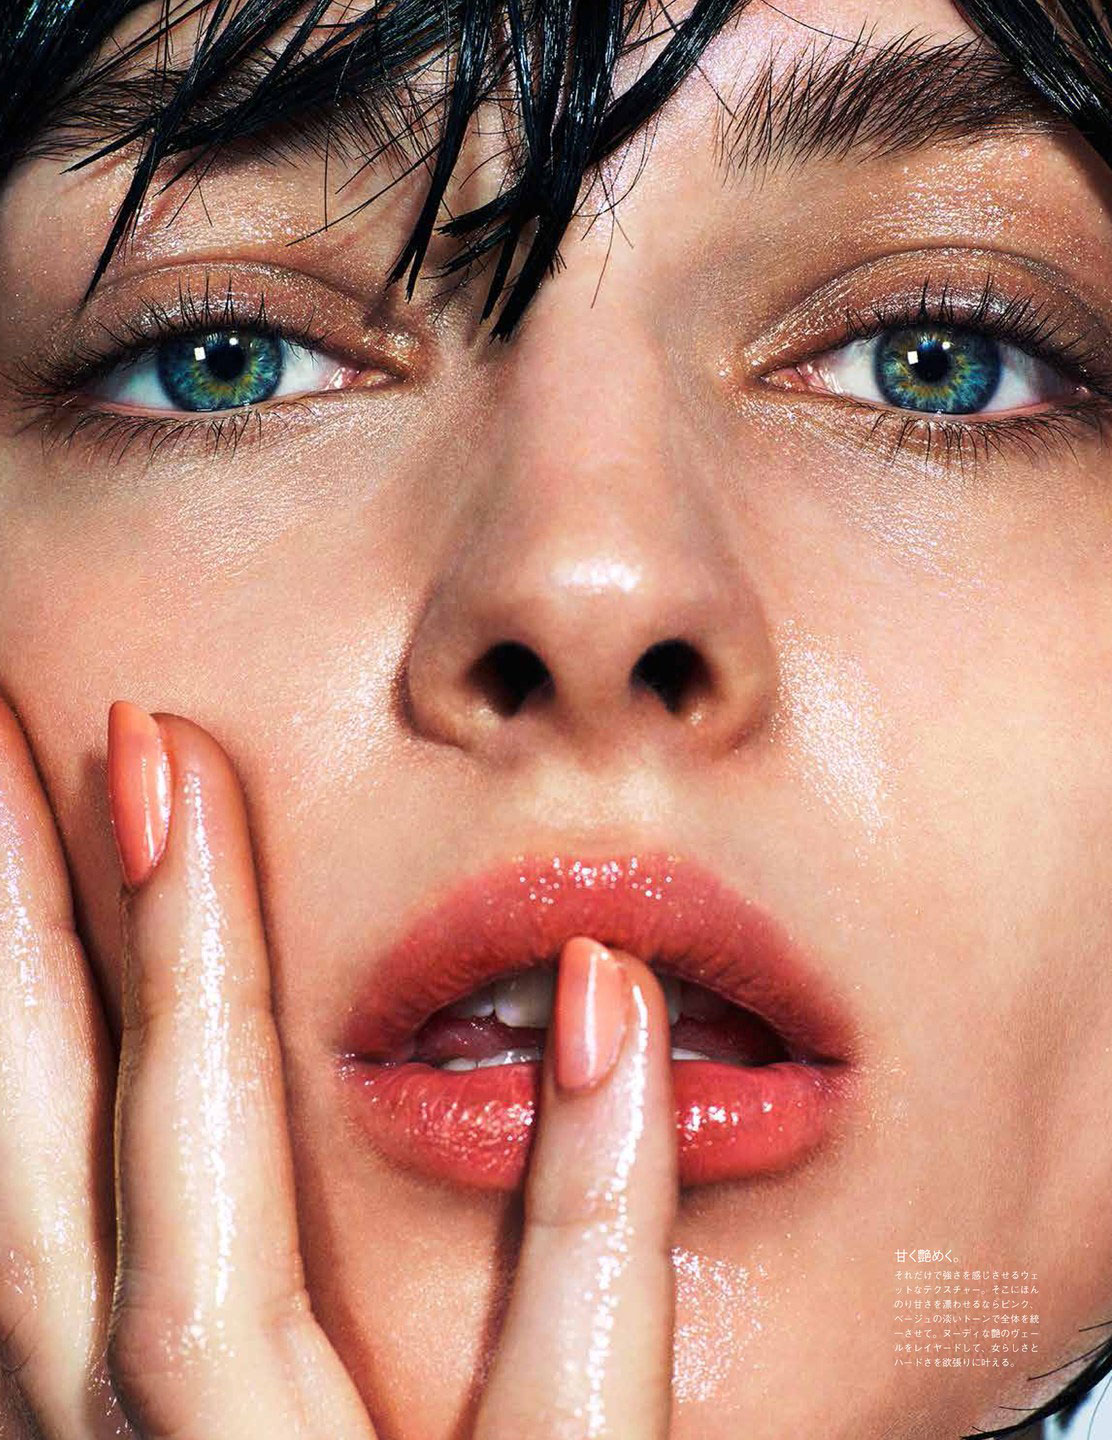 Daga-Ziober-VOGUE-JAPAN-BEAUTY-04